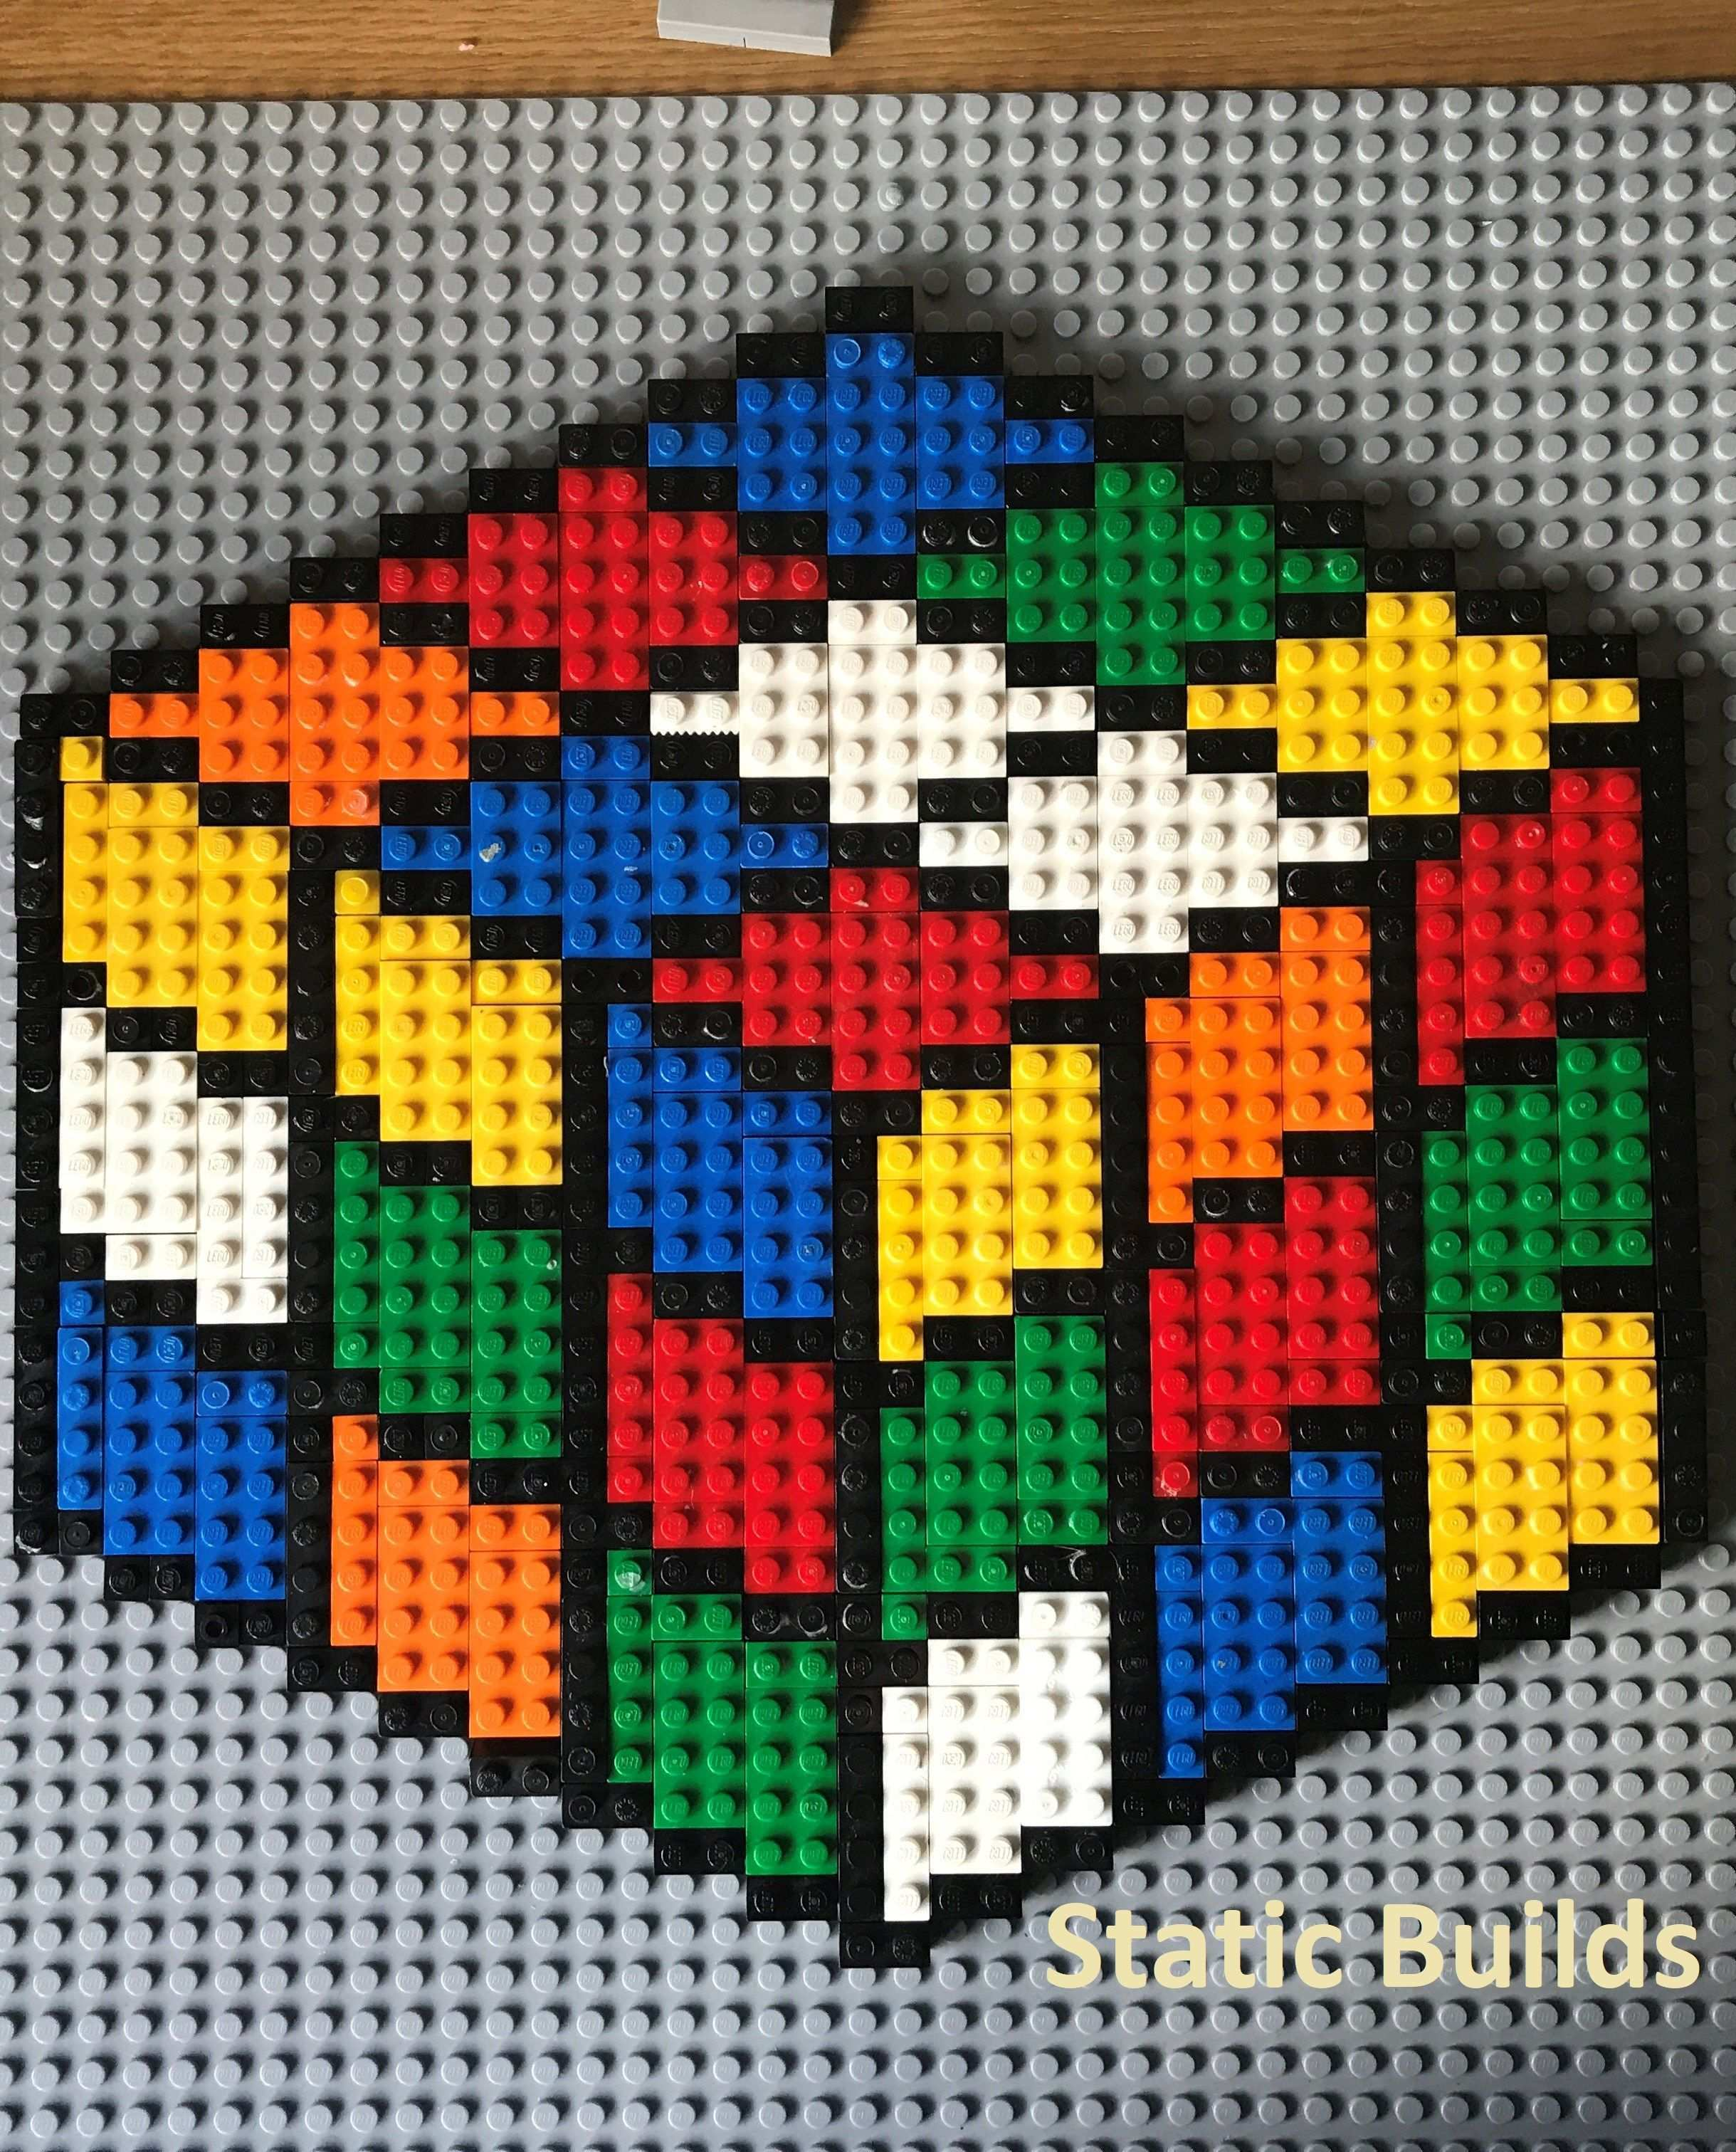 This Lego Rubik S Cube Mosaic Was An Awesome Lego Design I Created The Design Is Based Of A Puzzle I Have I Really Liked How The Colours Loo And How It